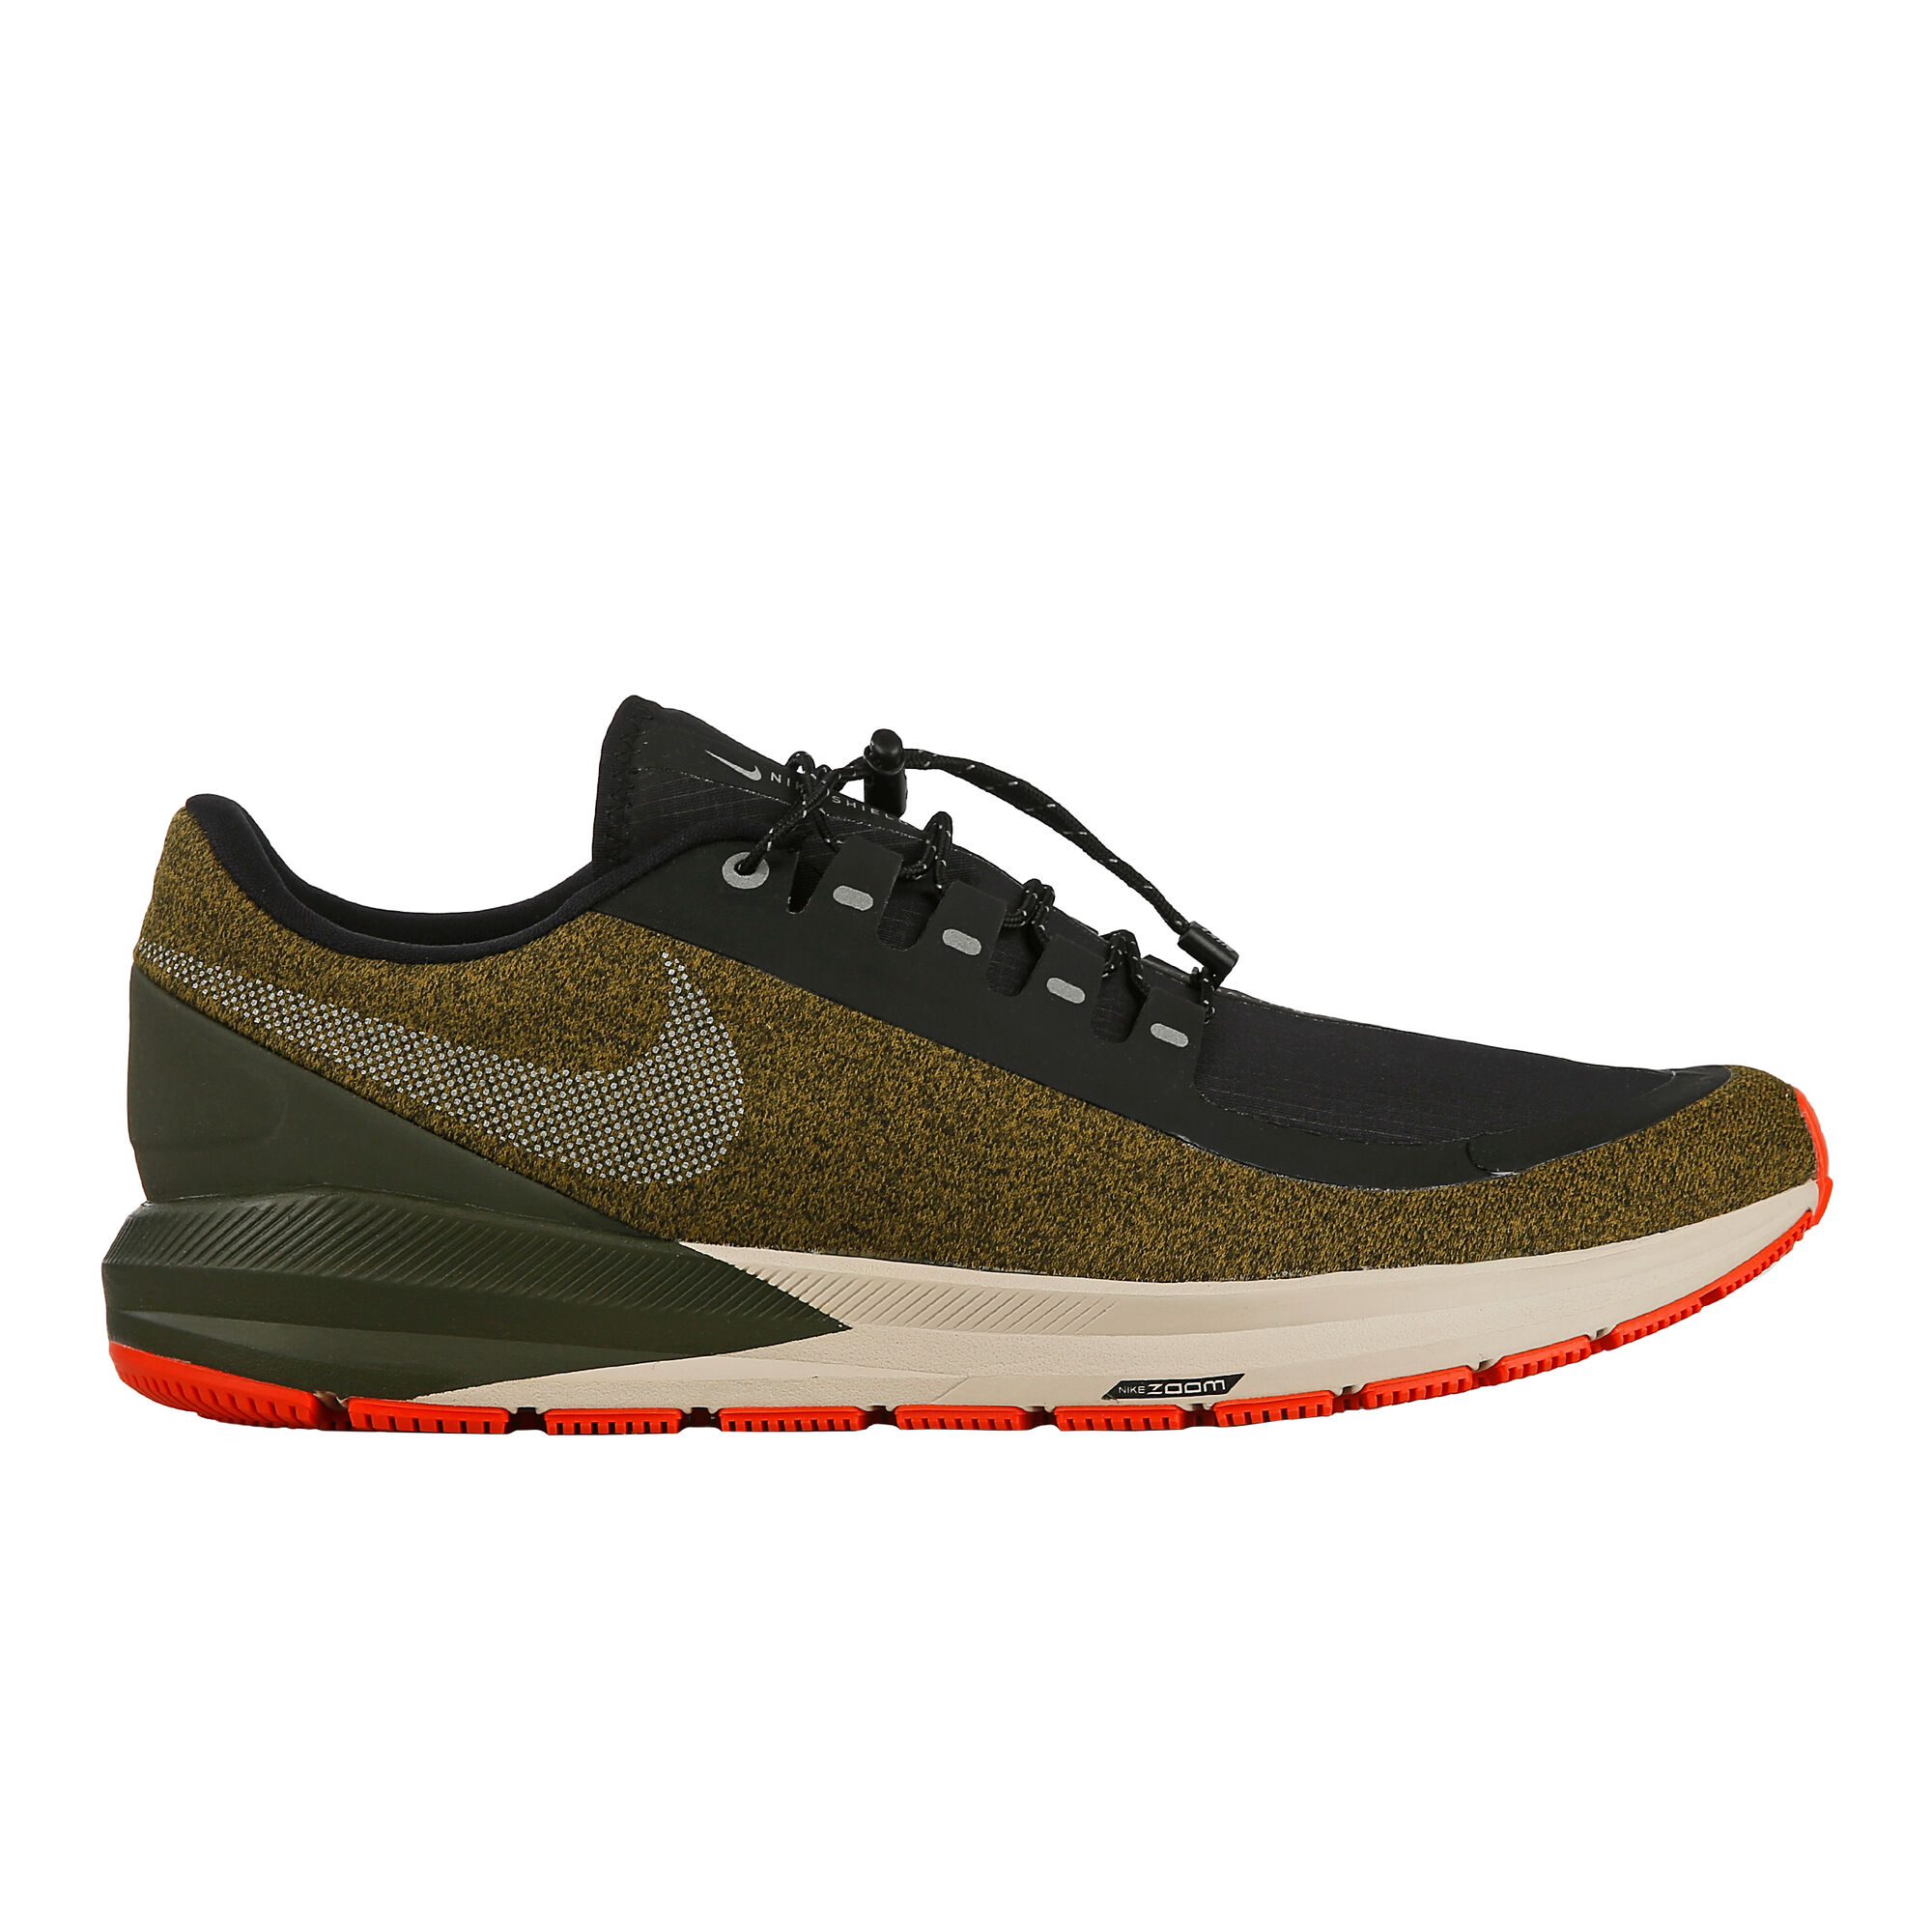 47b9a97a535 Nike · Nike · Nike · Nike · Nike · Nike · Nike · Nike · Nike · Nike. Air  Zoom Structure 22 Shield ...